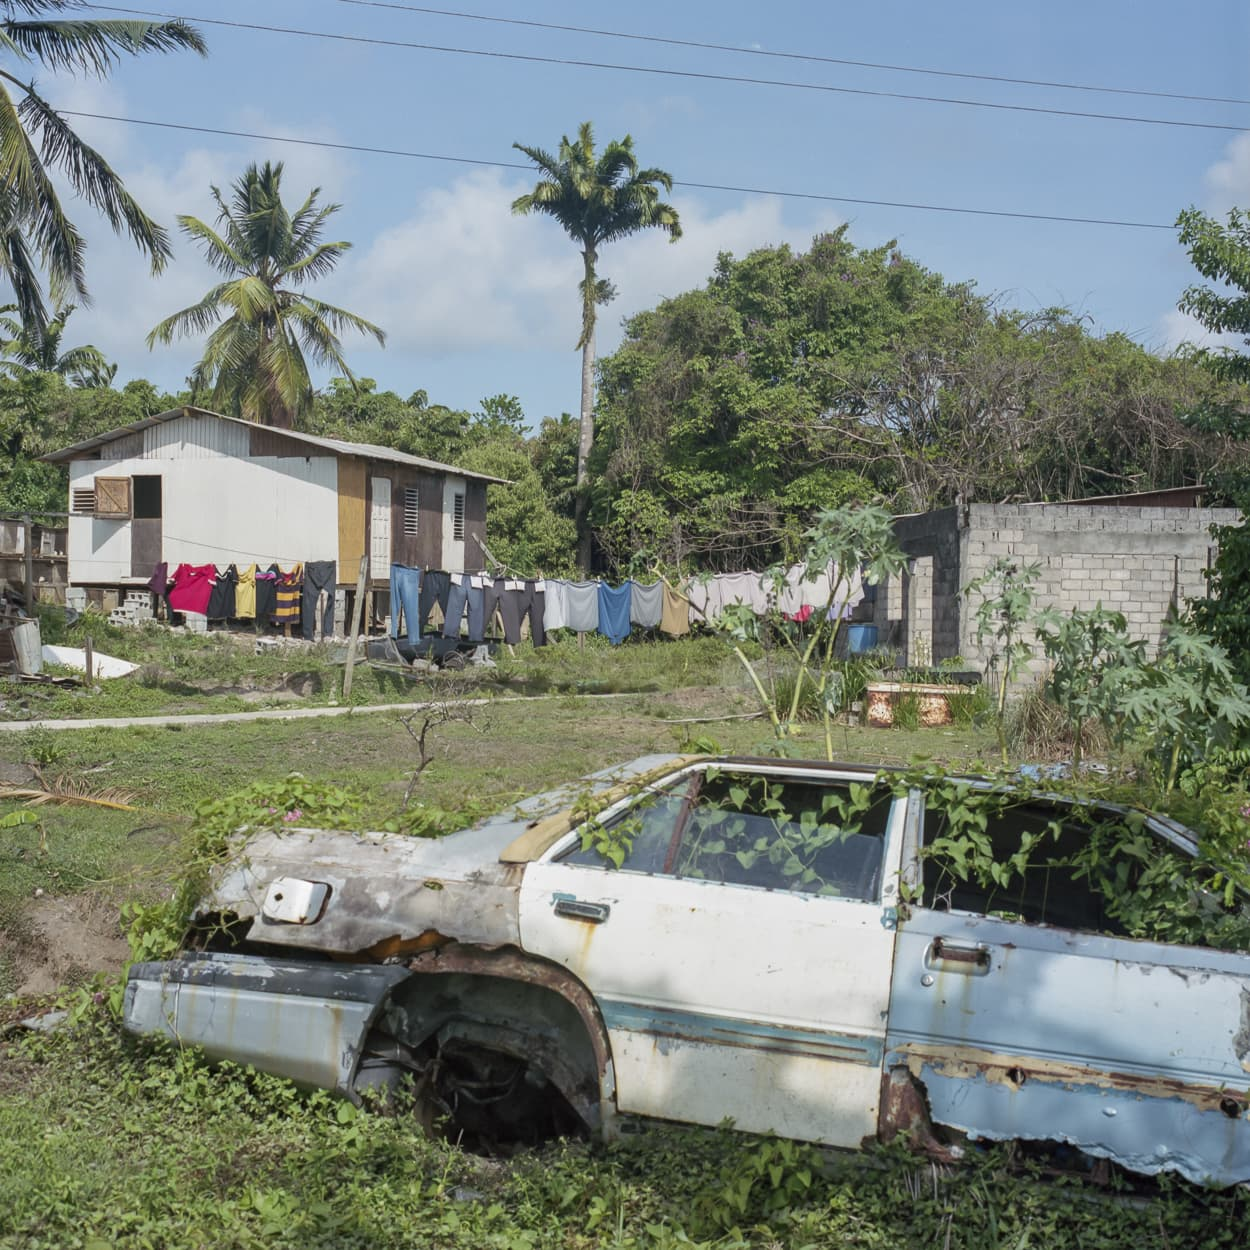 An abandoned car in a village in St. Lucia